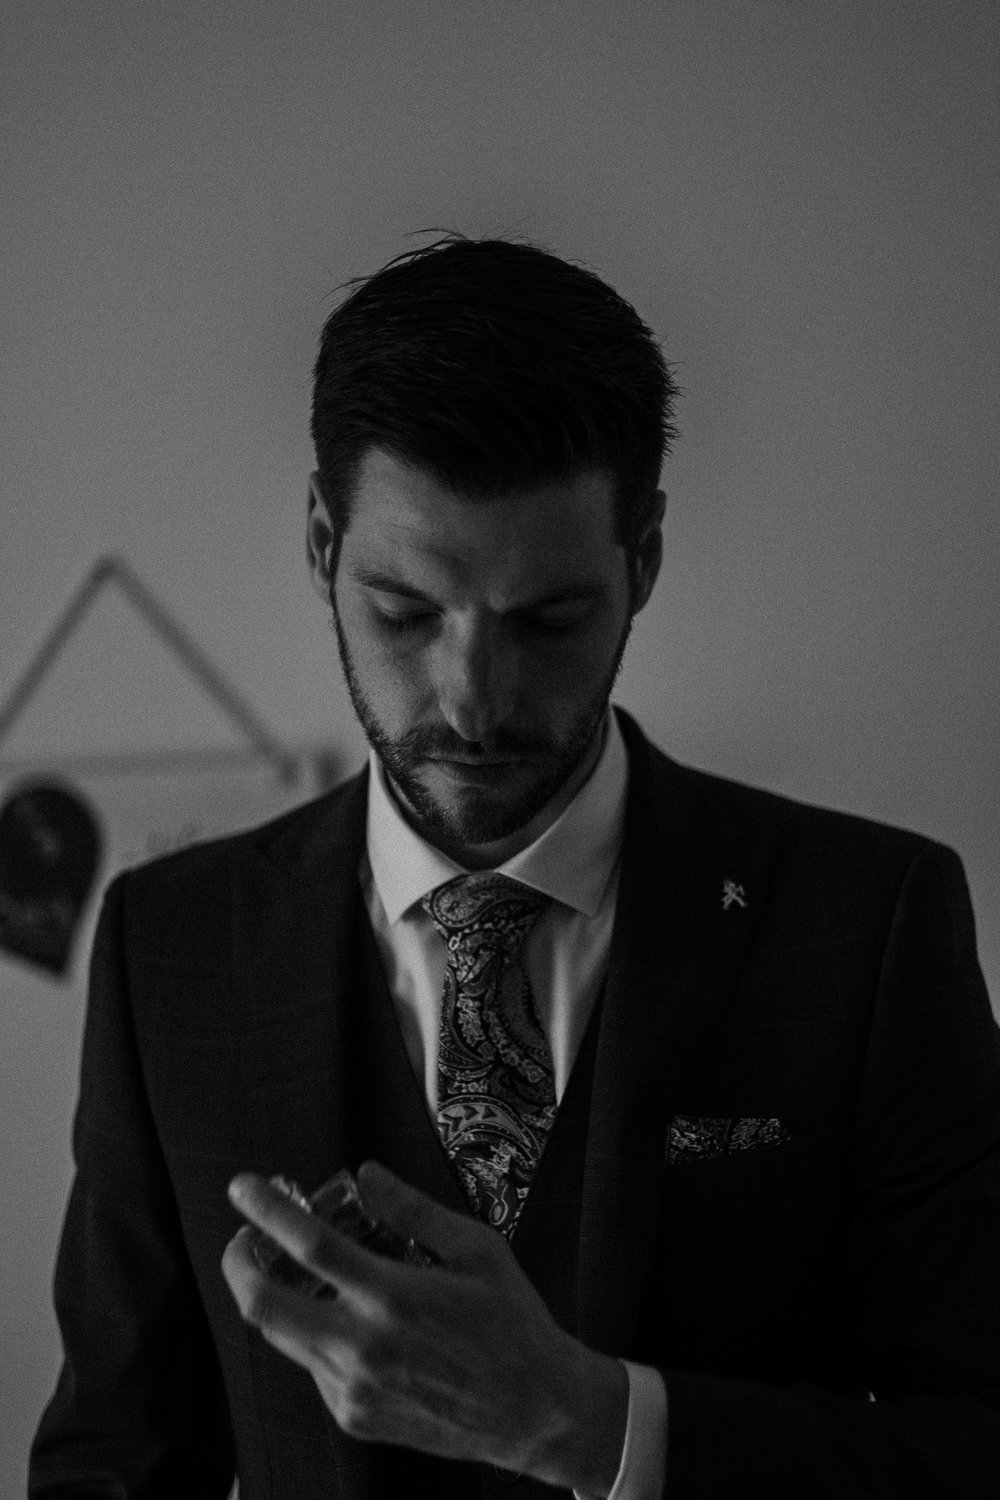 Moody black and white photo of groom getting ready